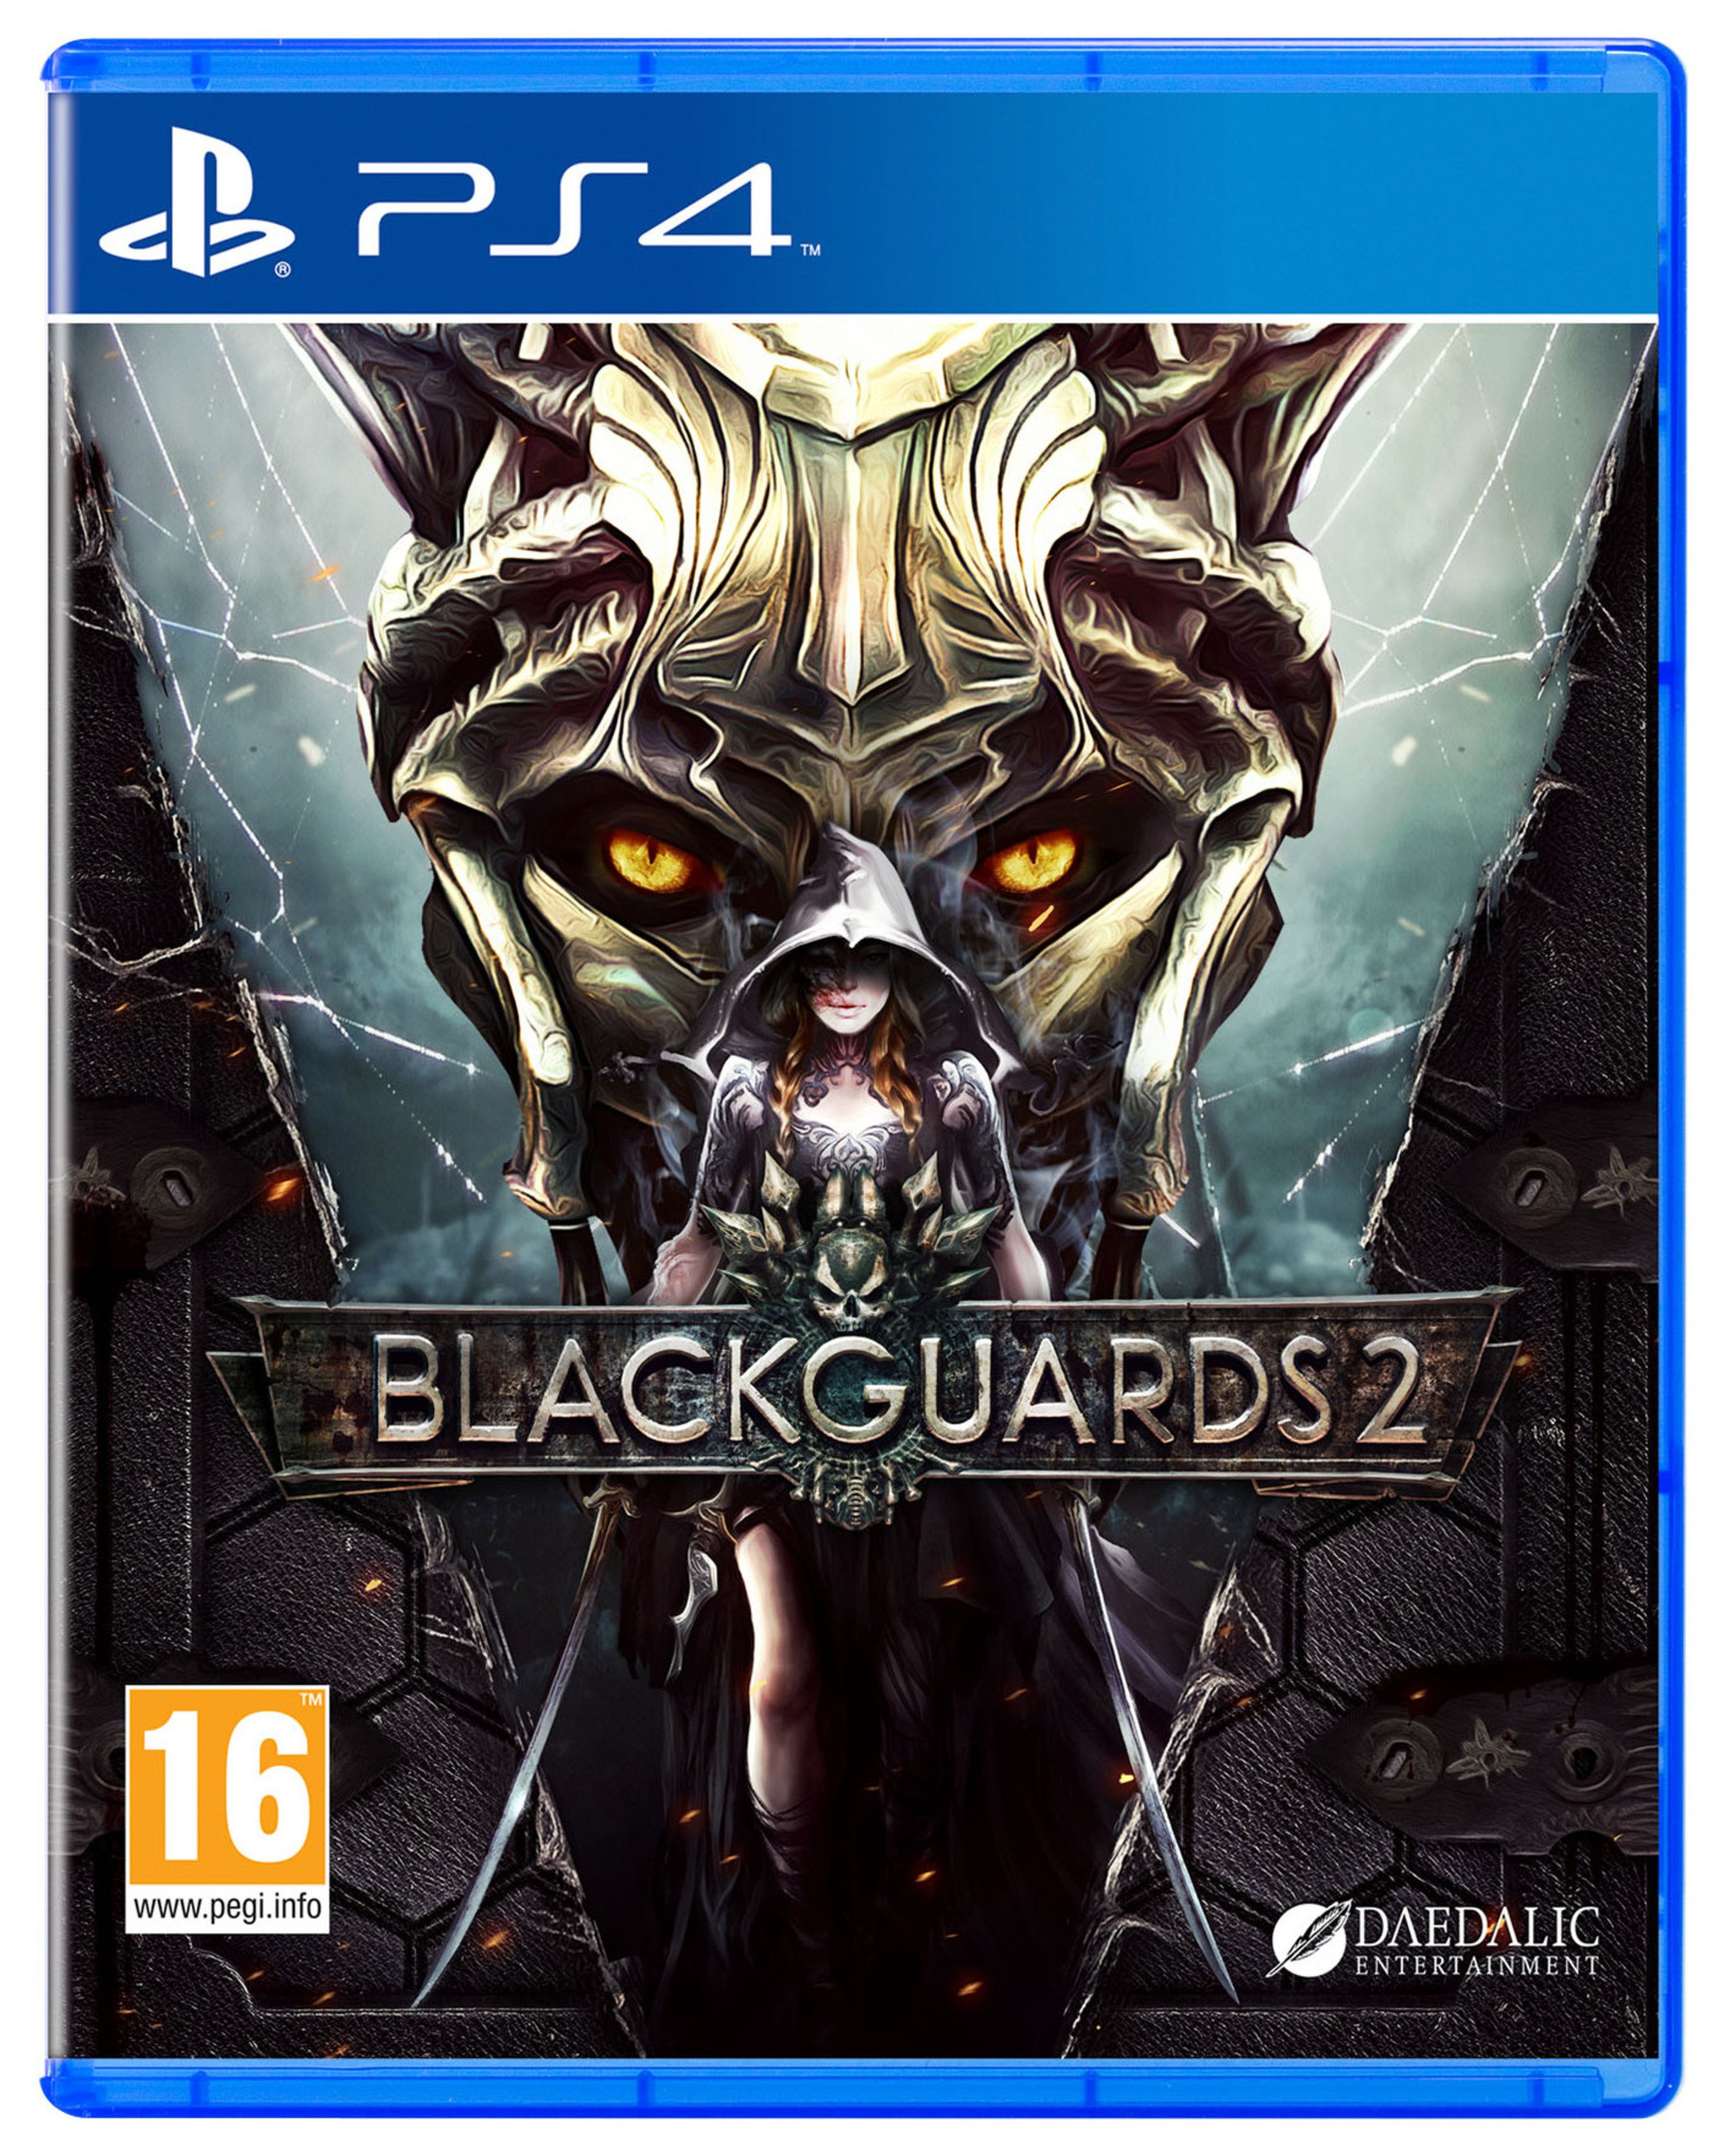 Image of Blackguards 2 PS4 Game.